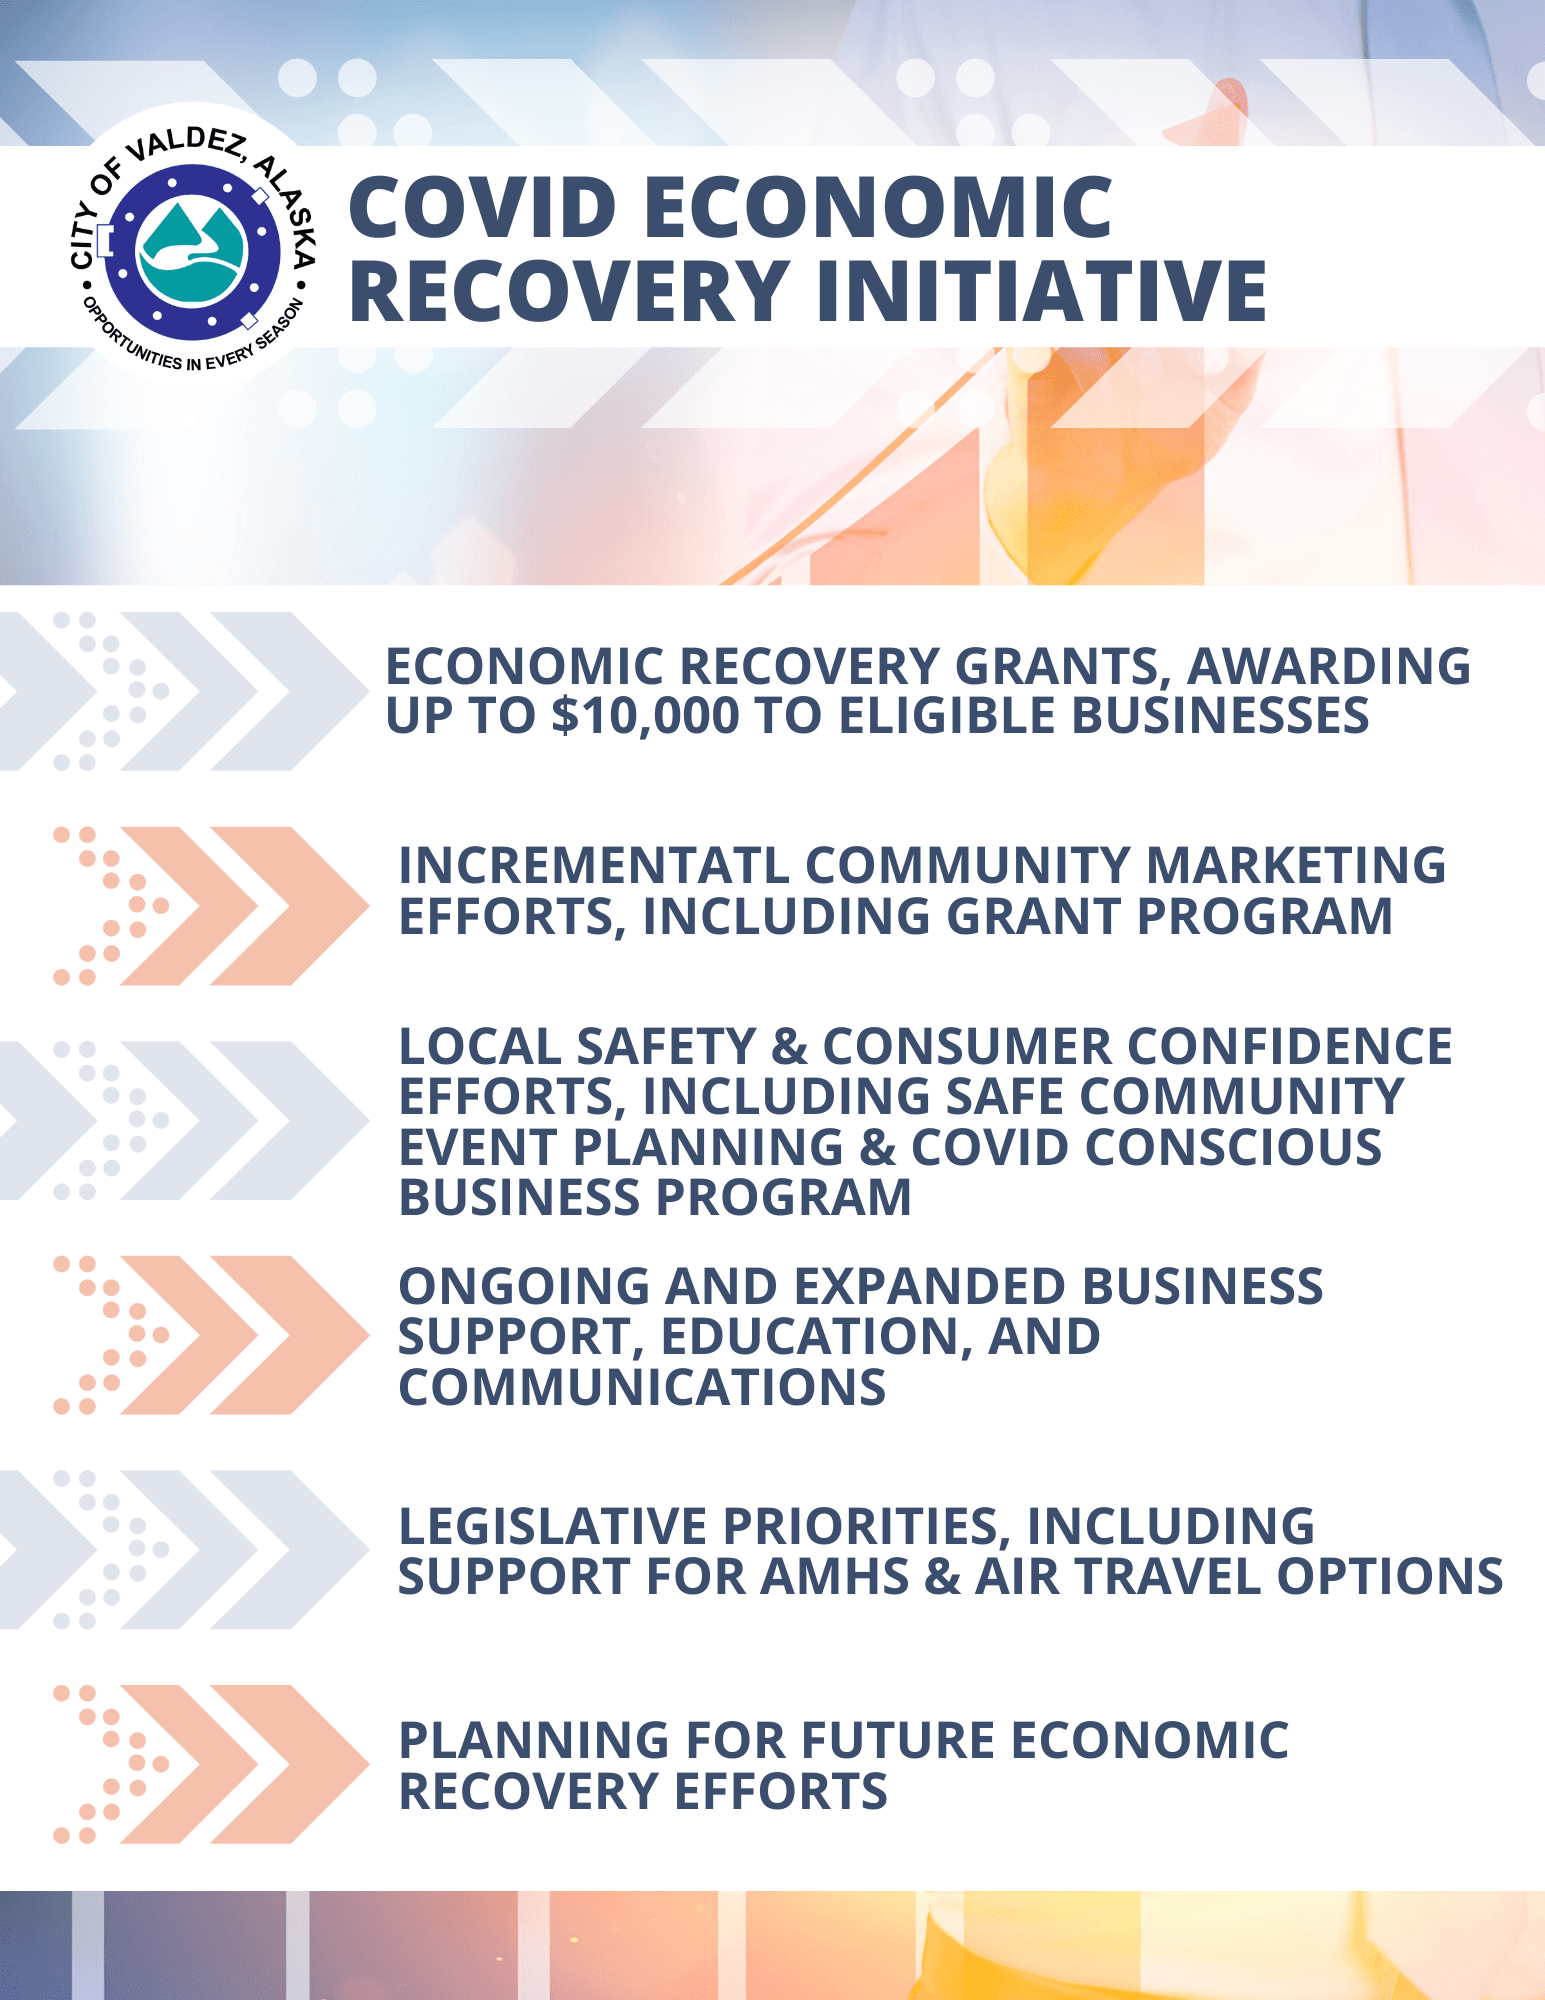 COVID Economic Recovery Initiative Overview Graphic